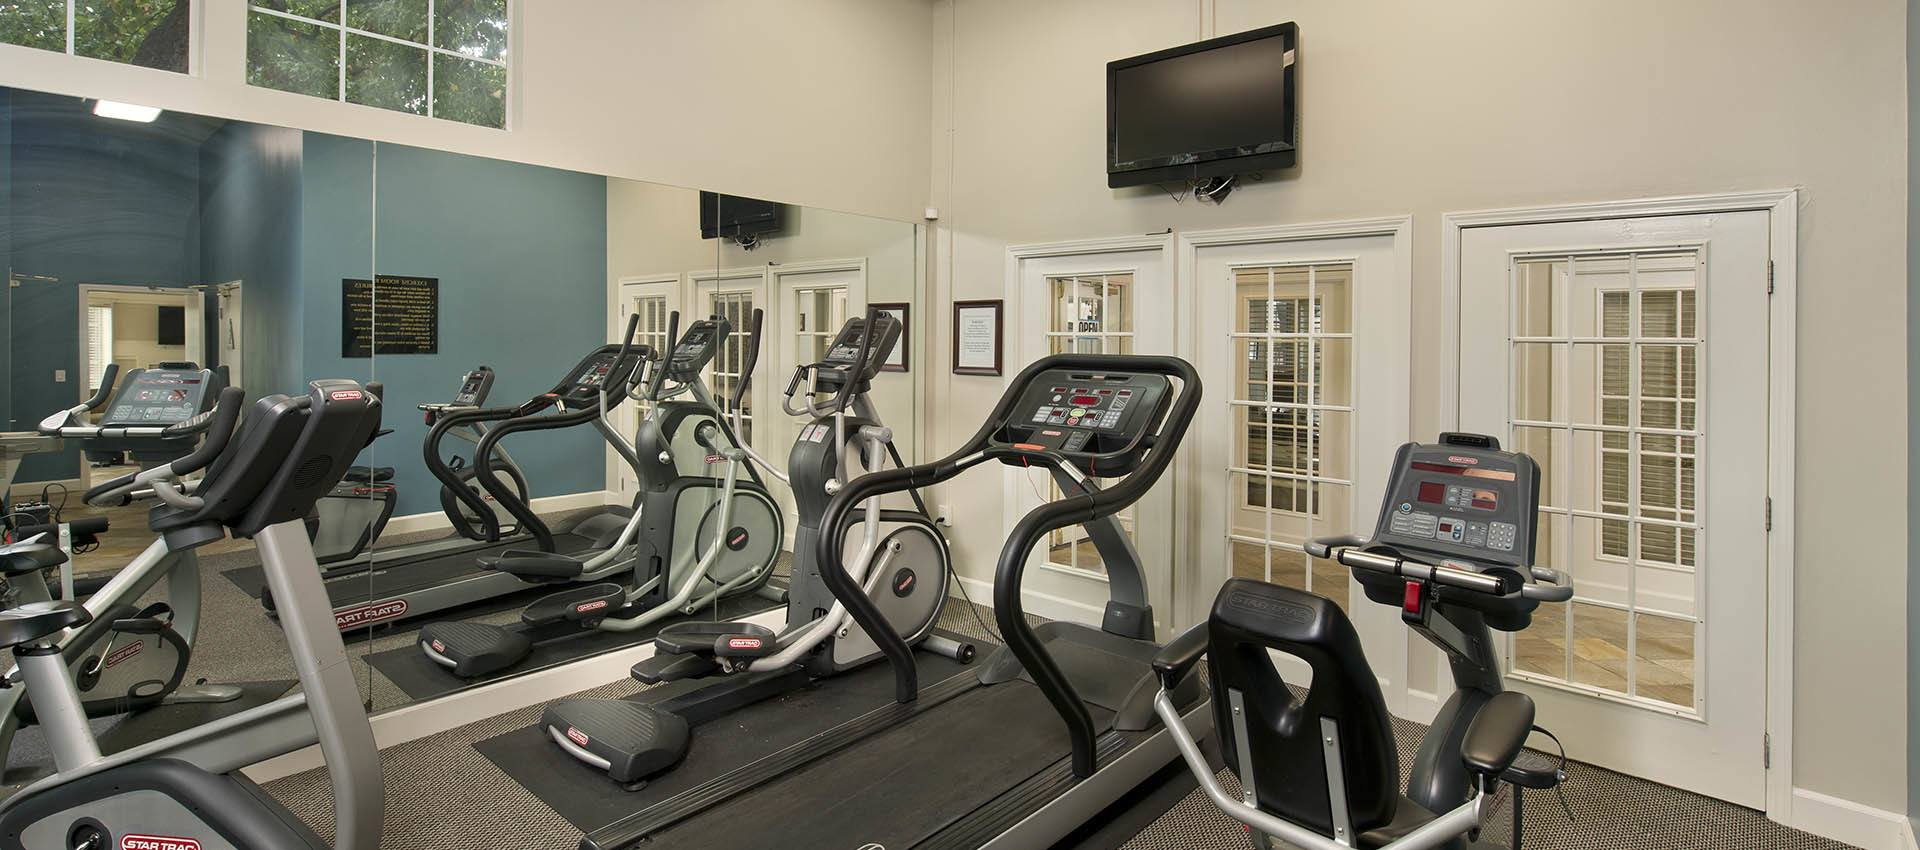 Fitness Center at Mill Springs Park Apartment Homes in CA